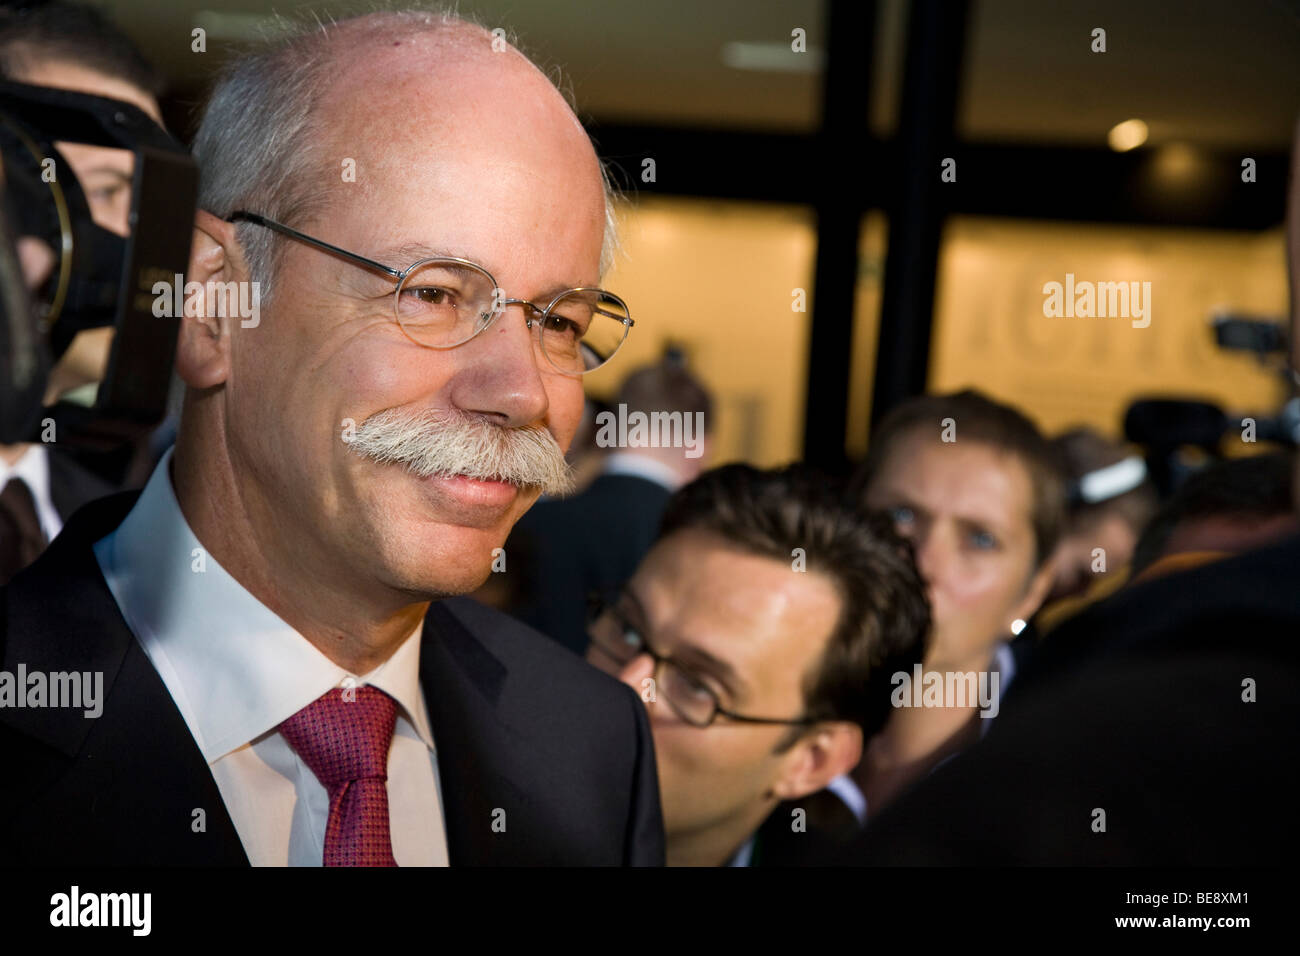 Dr Dieter Zetsche CEO of DaimlerChrysler talks at the Mercedes press launch at a European motor show - Stock Image